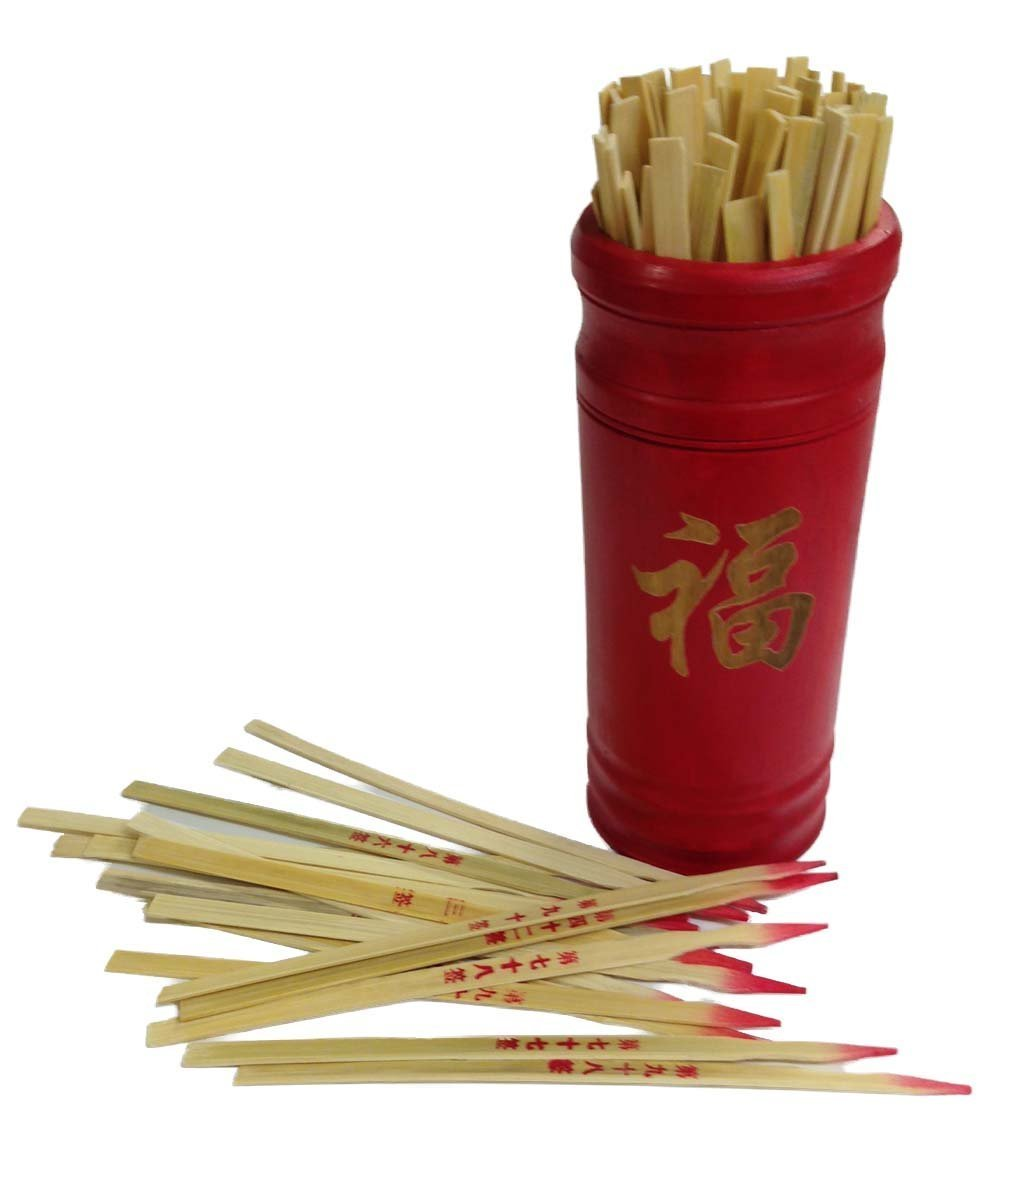 Chinese Fortune Telling Sticks W. Instruction Booklet Red Bamboo Cansiter Golden ''FU''